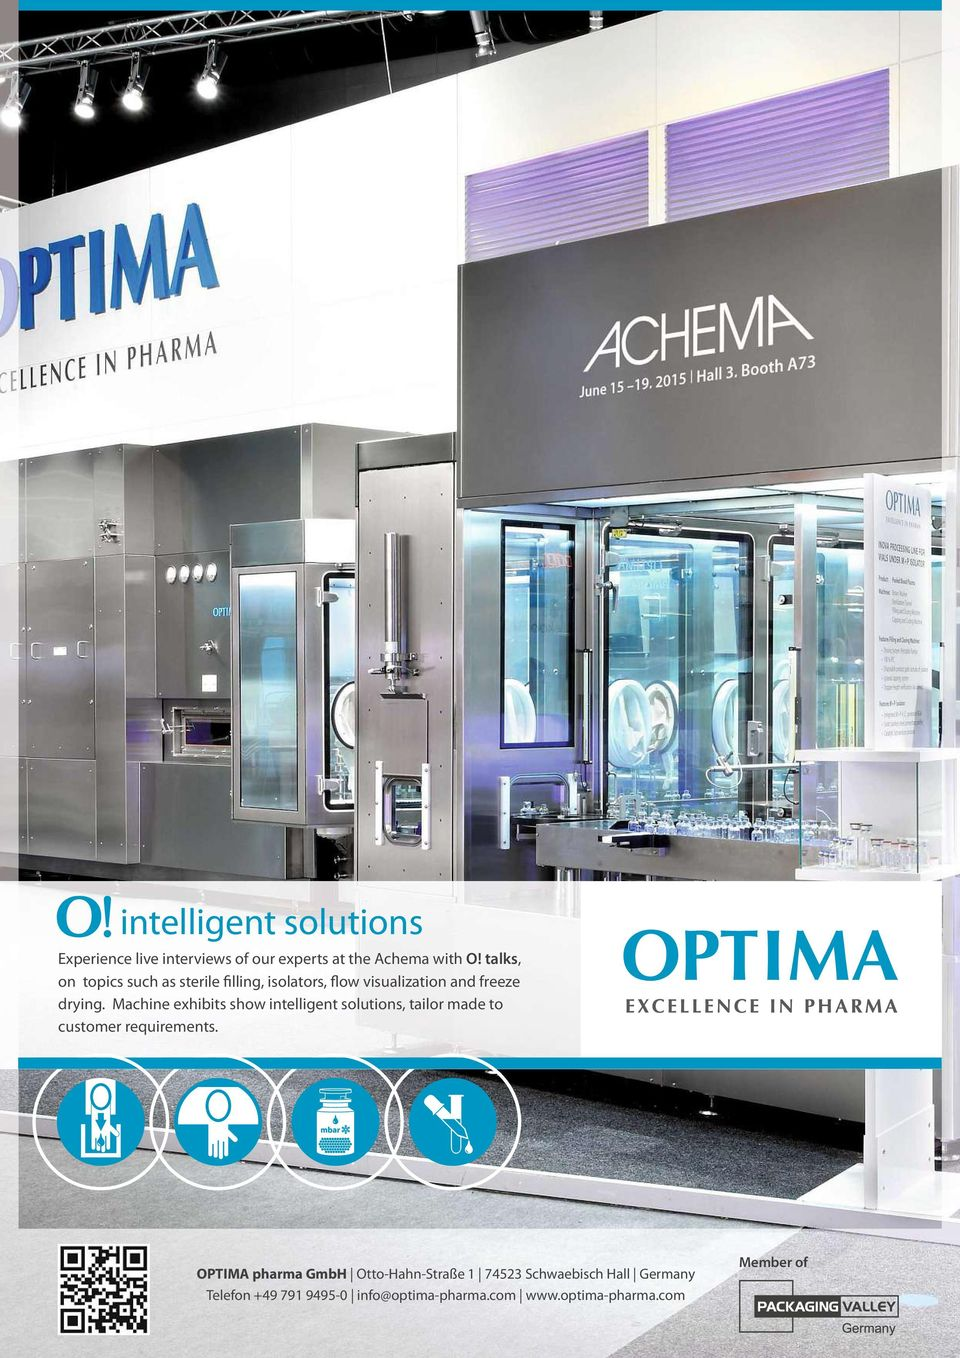 Machine exhibits show intelligent solutions,tailor made to customer requirements.